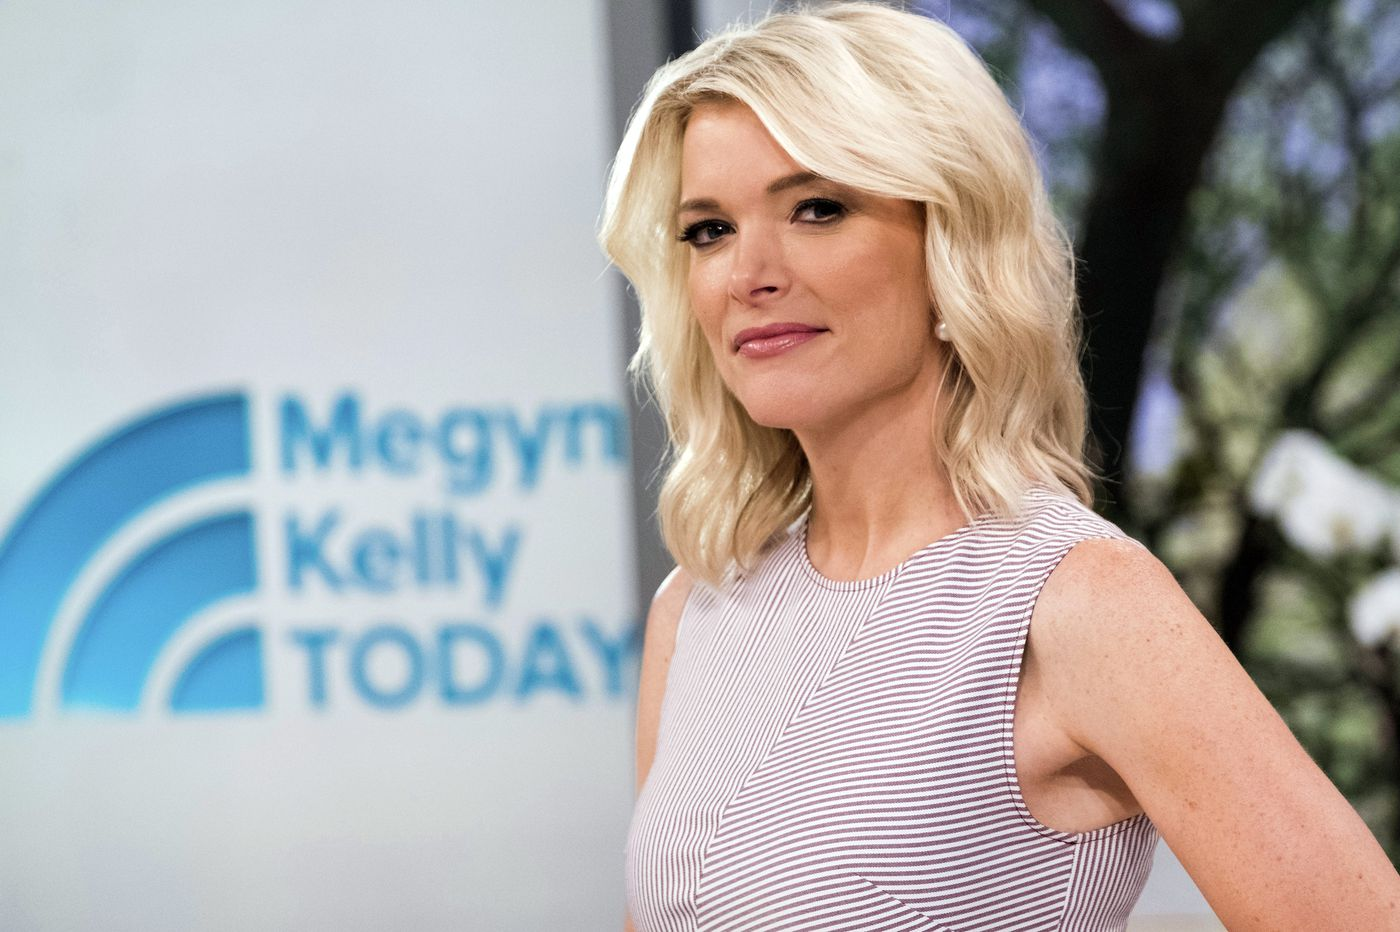 Megyn Kelly is off the 'Today' show, negotiating NBC exit